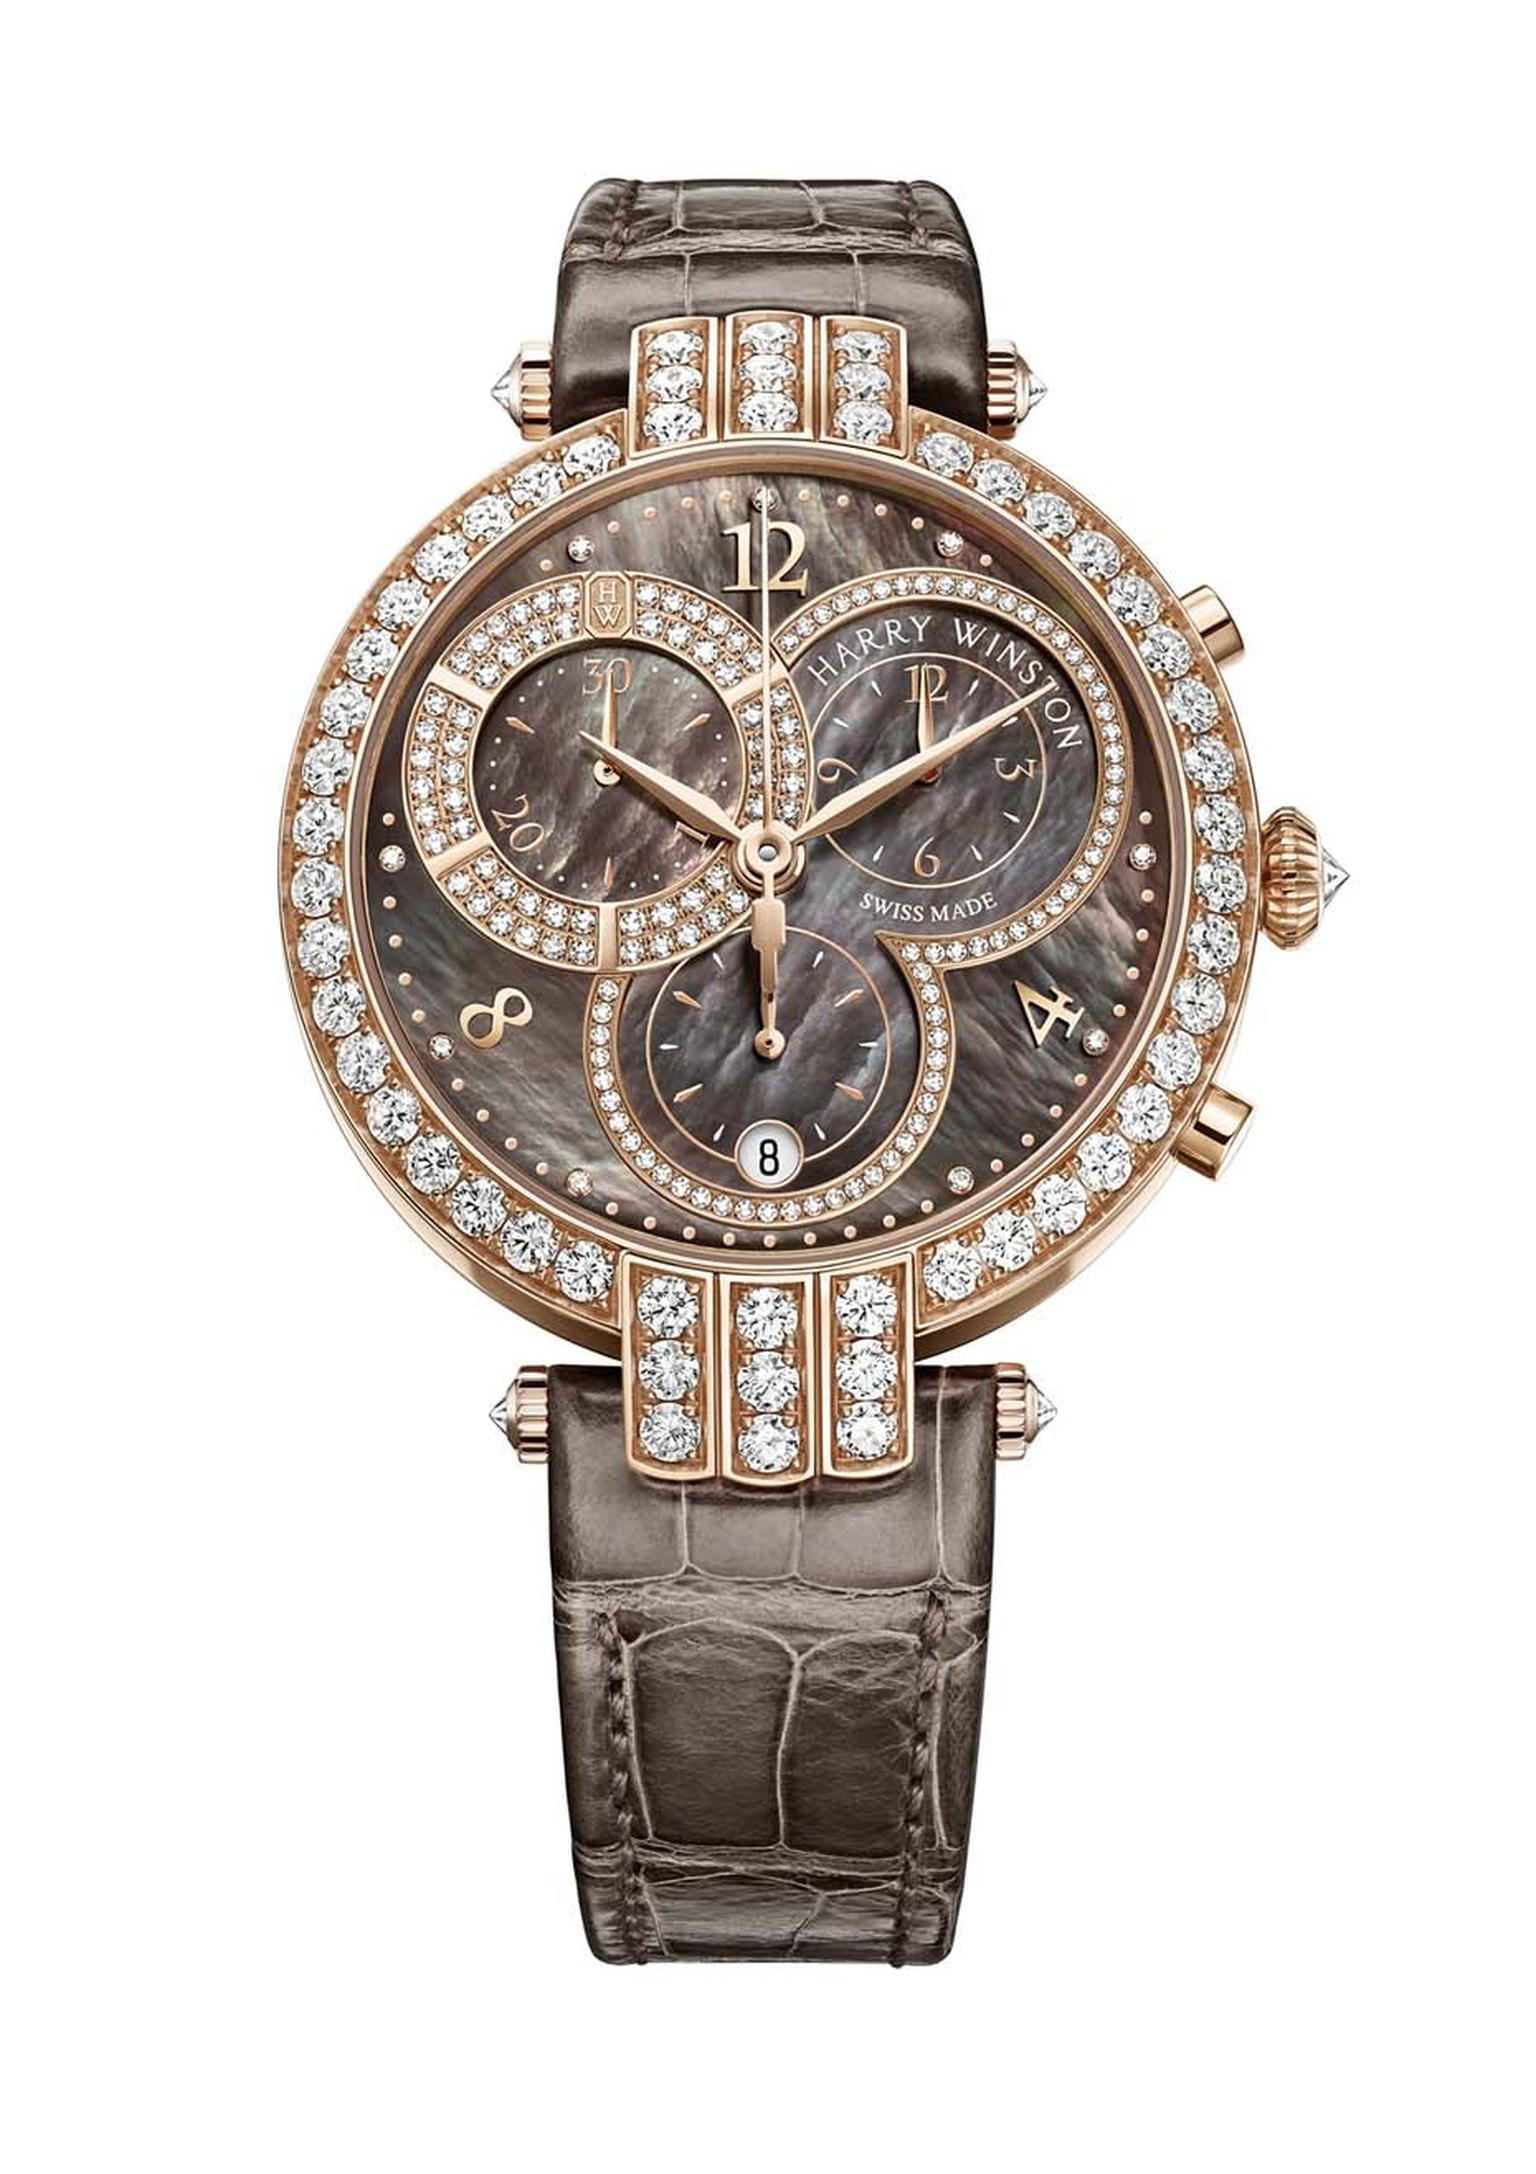 Harry Winston's Premier Chronograph featuring a brown Tahitian mother-of-pearl dial and 236 brilliant-cut diamonds totalling 3.61 carats in a rose gold case.